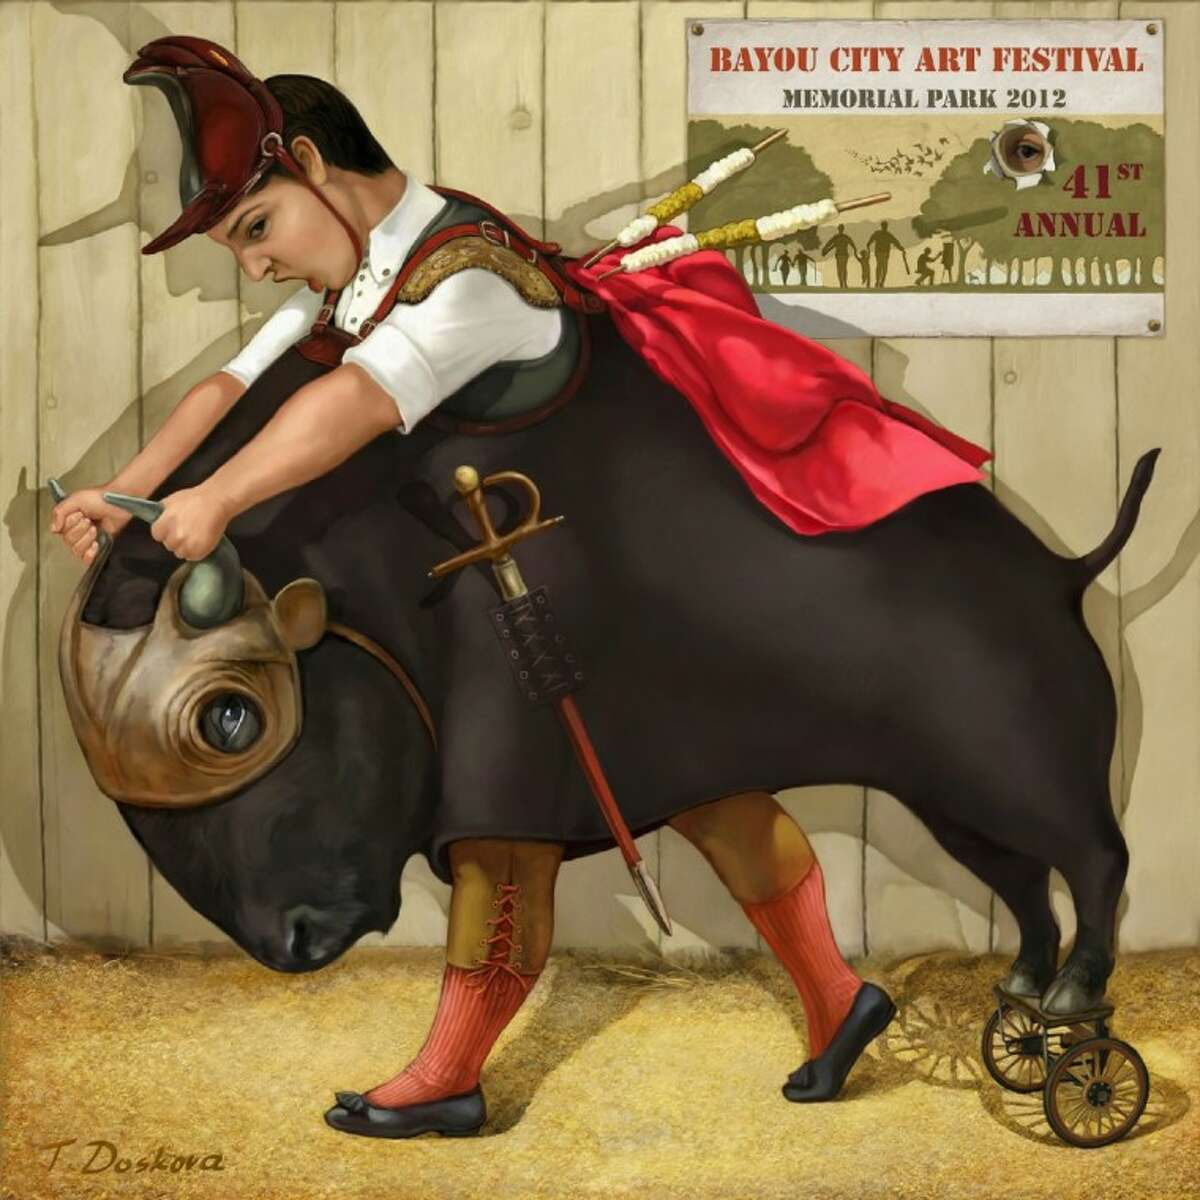 """Artwork titled """"La Corrida"""" by Tanya Doskova, the 41st Annual Capital One Bank Bayou City Art Festival Memorial Park's featured artist. (Submitted by the Bayou City Art Festival)"""